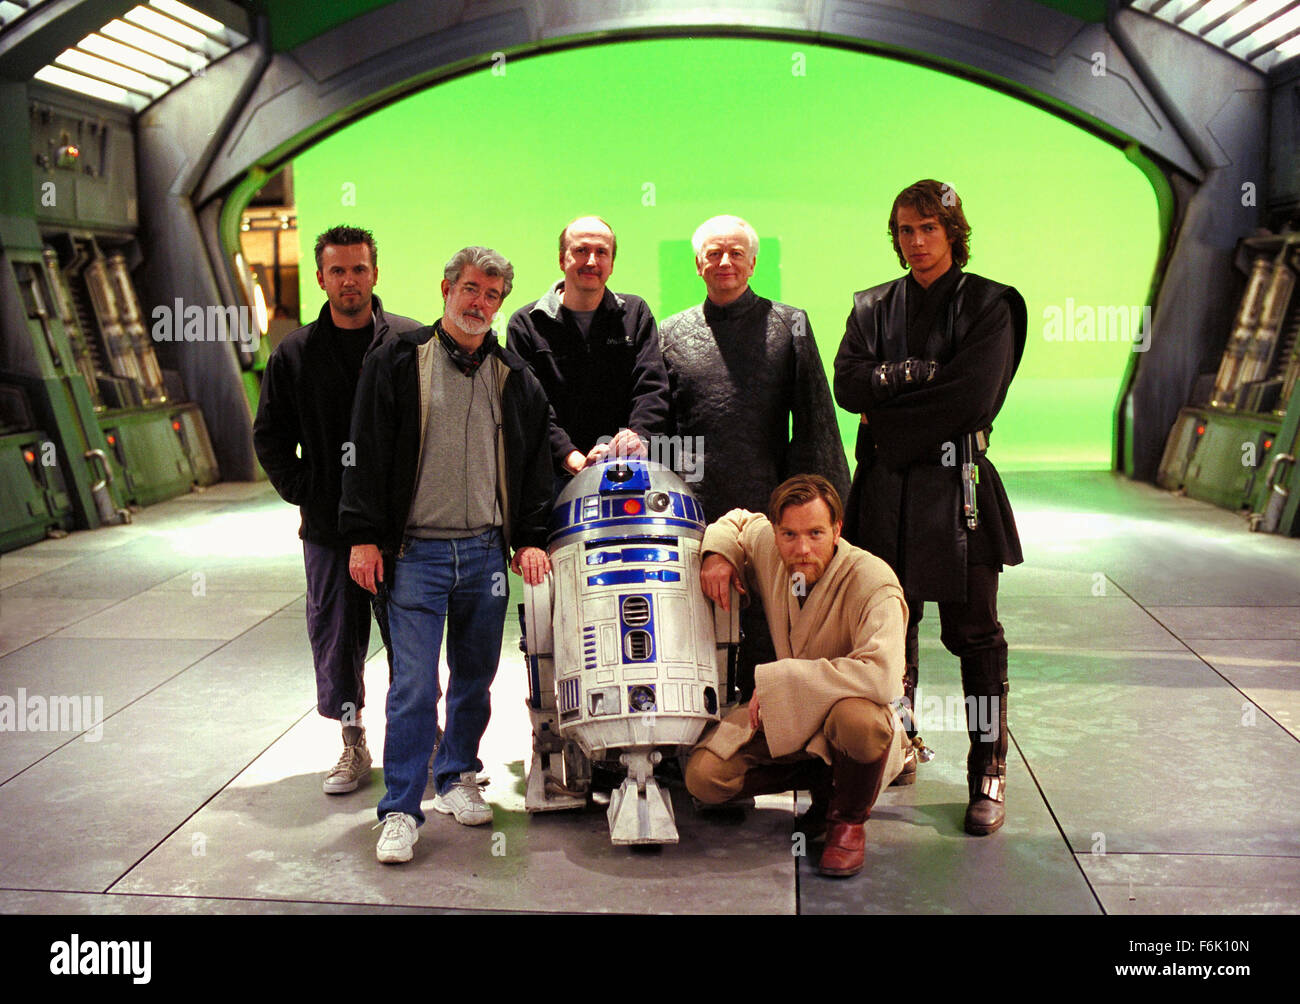 Release Date May 19 2005 Movie Title Star Wars Episode Stock Photo Alamy